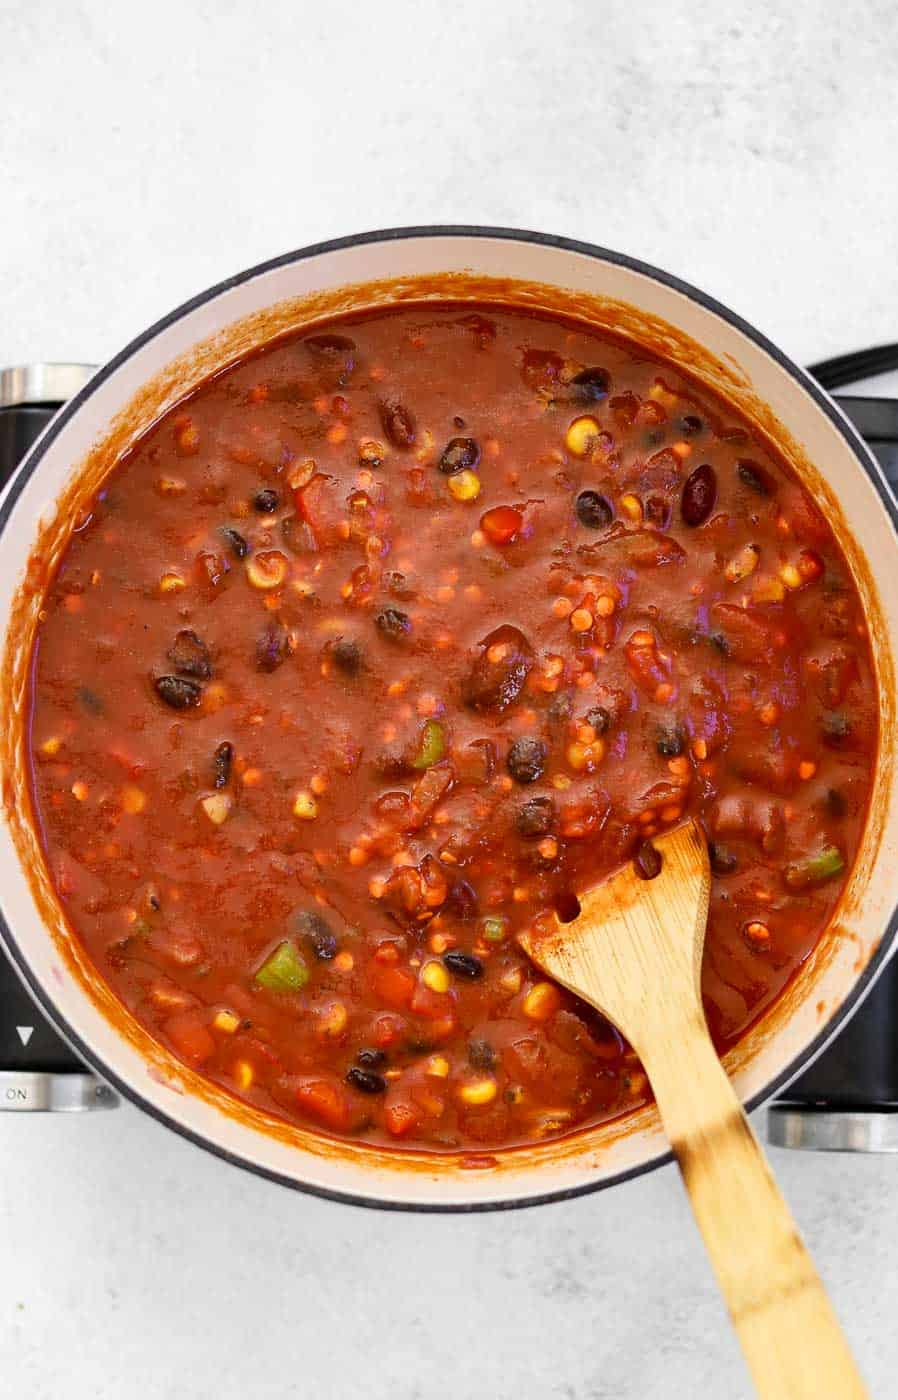 Lentil chili in a pot before cooking.